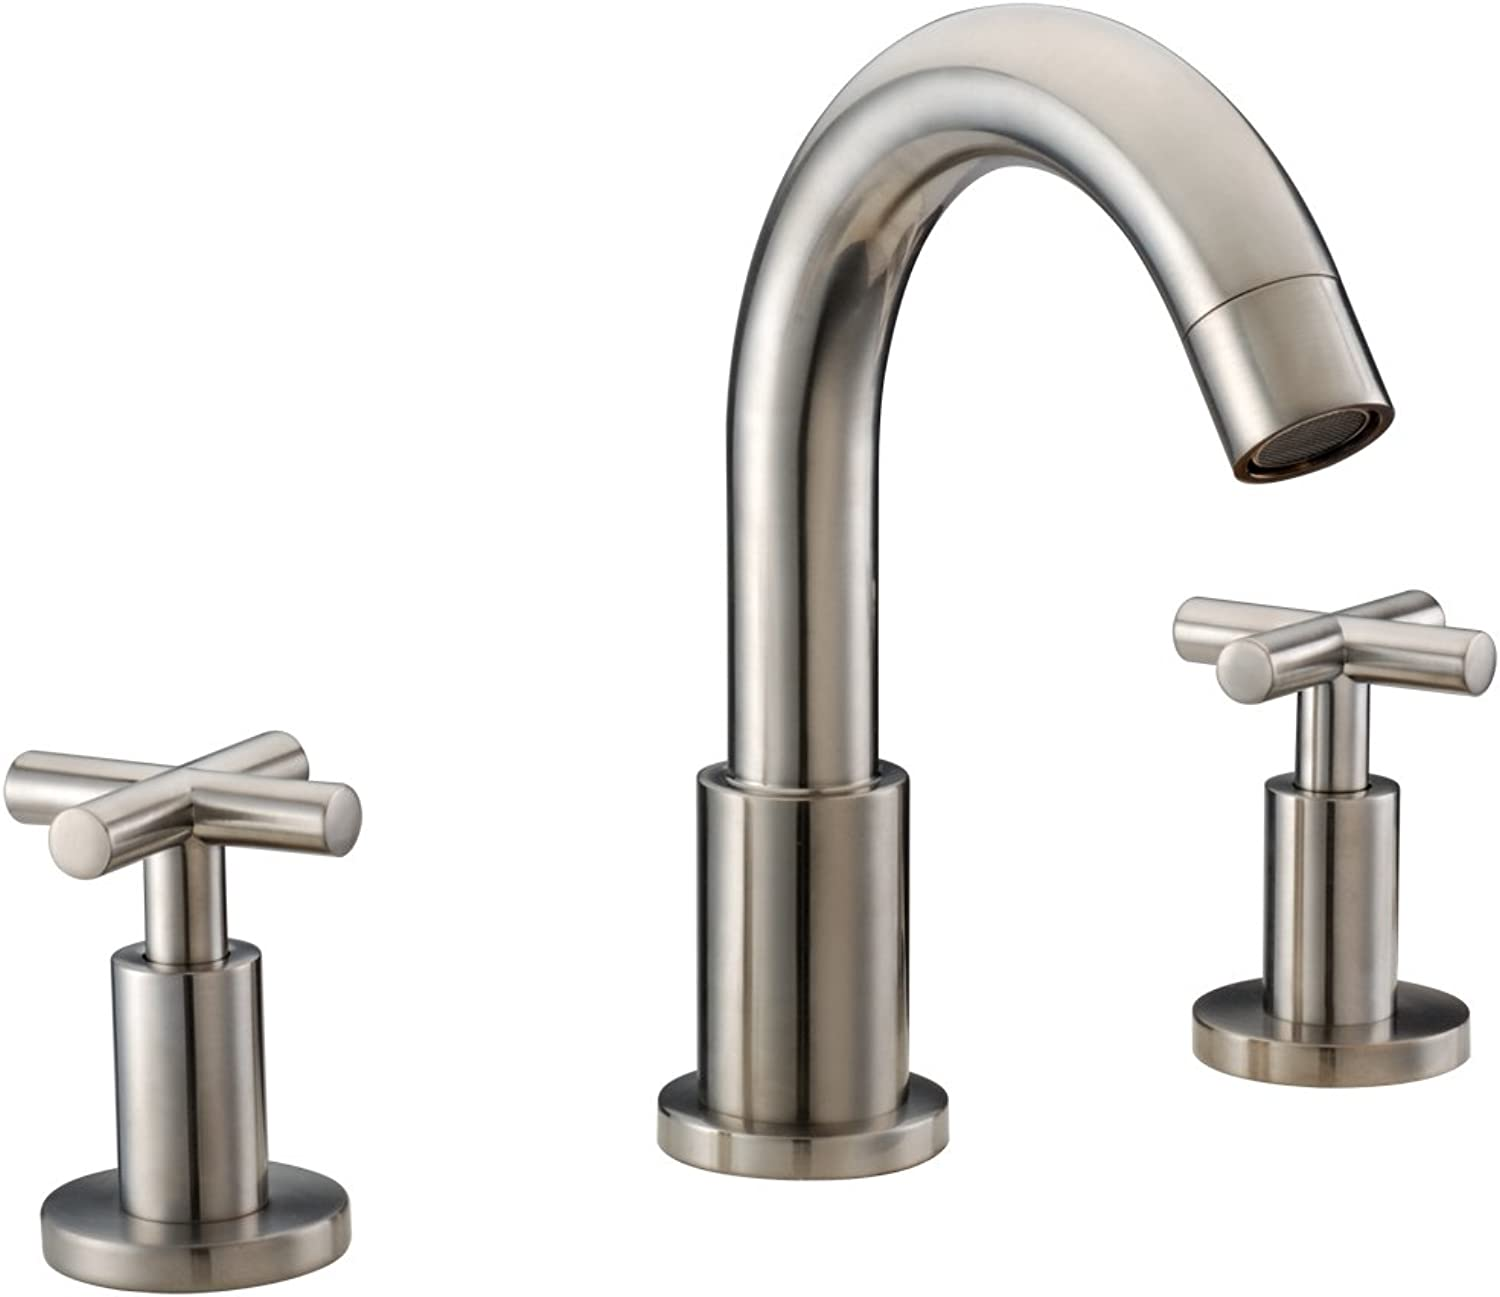 Dawn AB03 1513BN 3-Hole Widespread Lavatory Faucet with Cross Handles for 8  Centers, Brushed Nickel